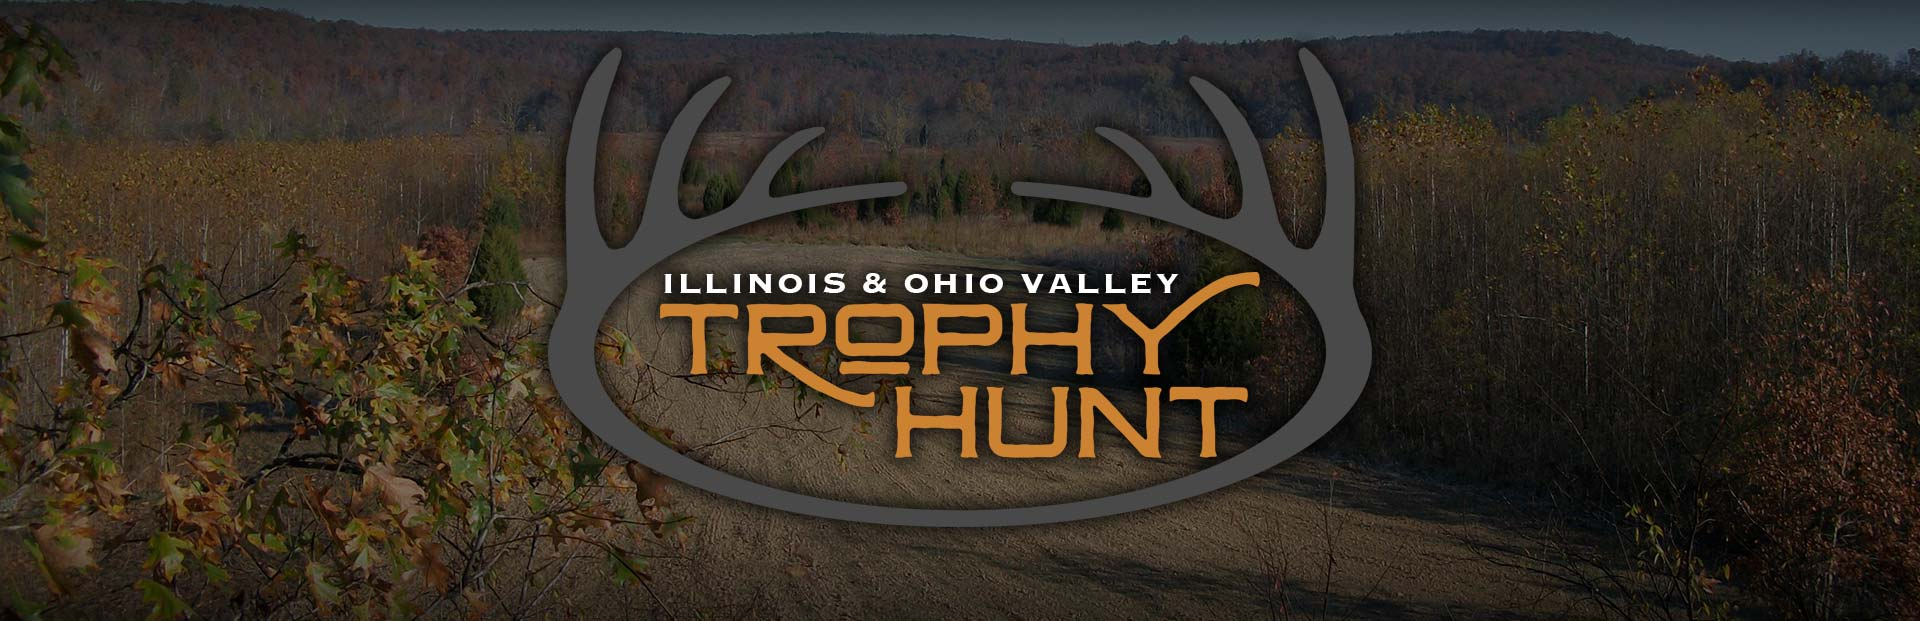 Illinois Ohio Valley Trophy Hunt  Downloads